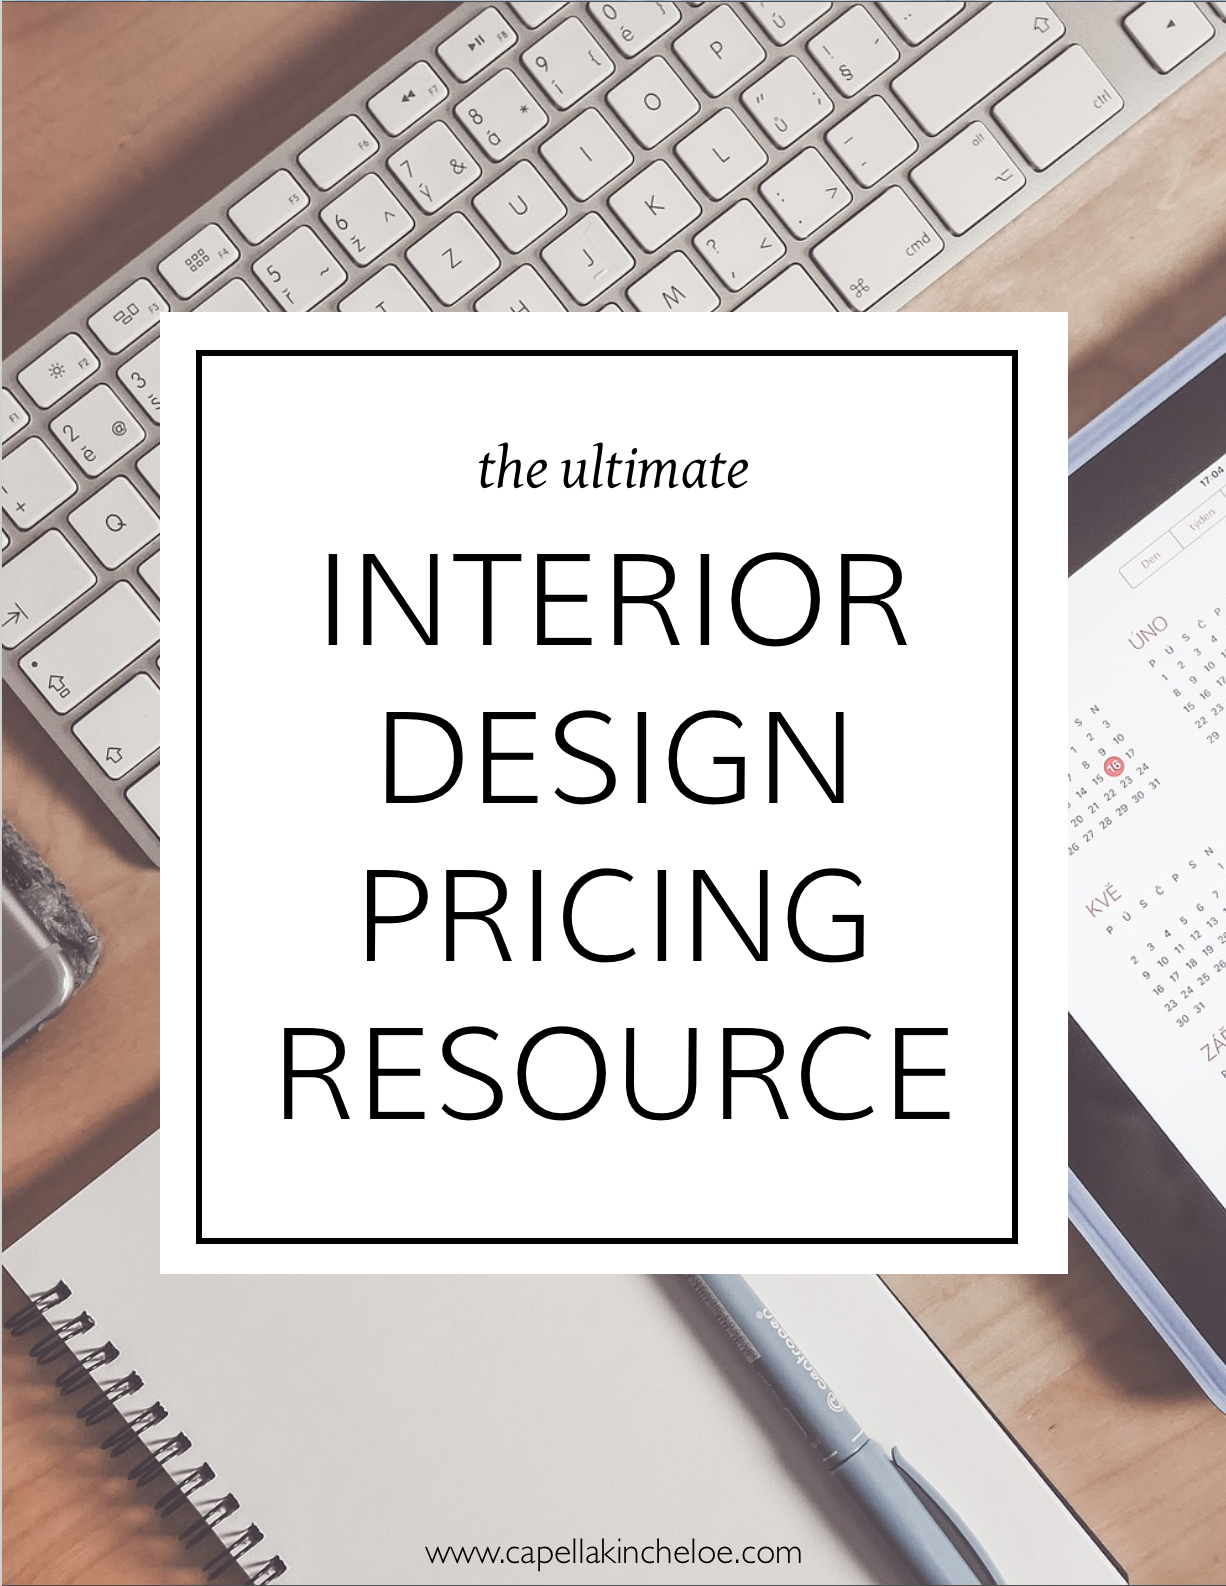 Ultimate Interior Design Pricing Resource Interior Design Career Interior Design Bedroom Interior Design Basics